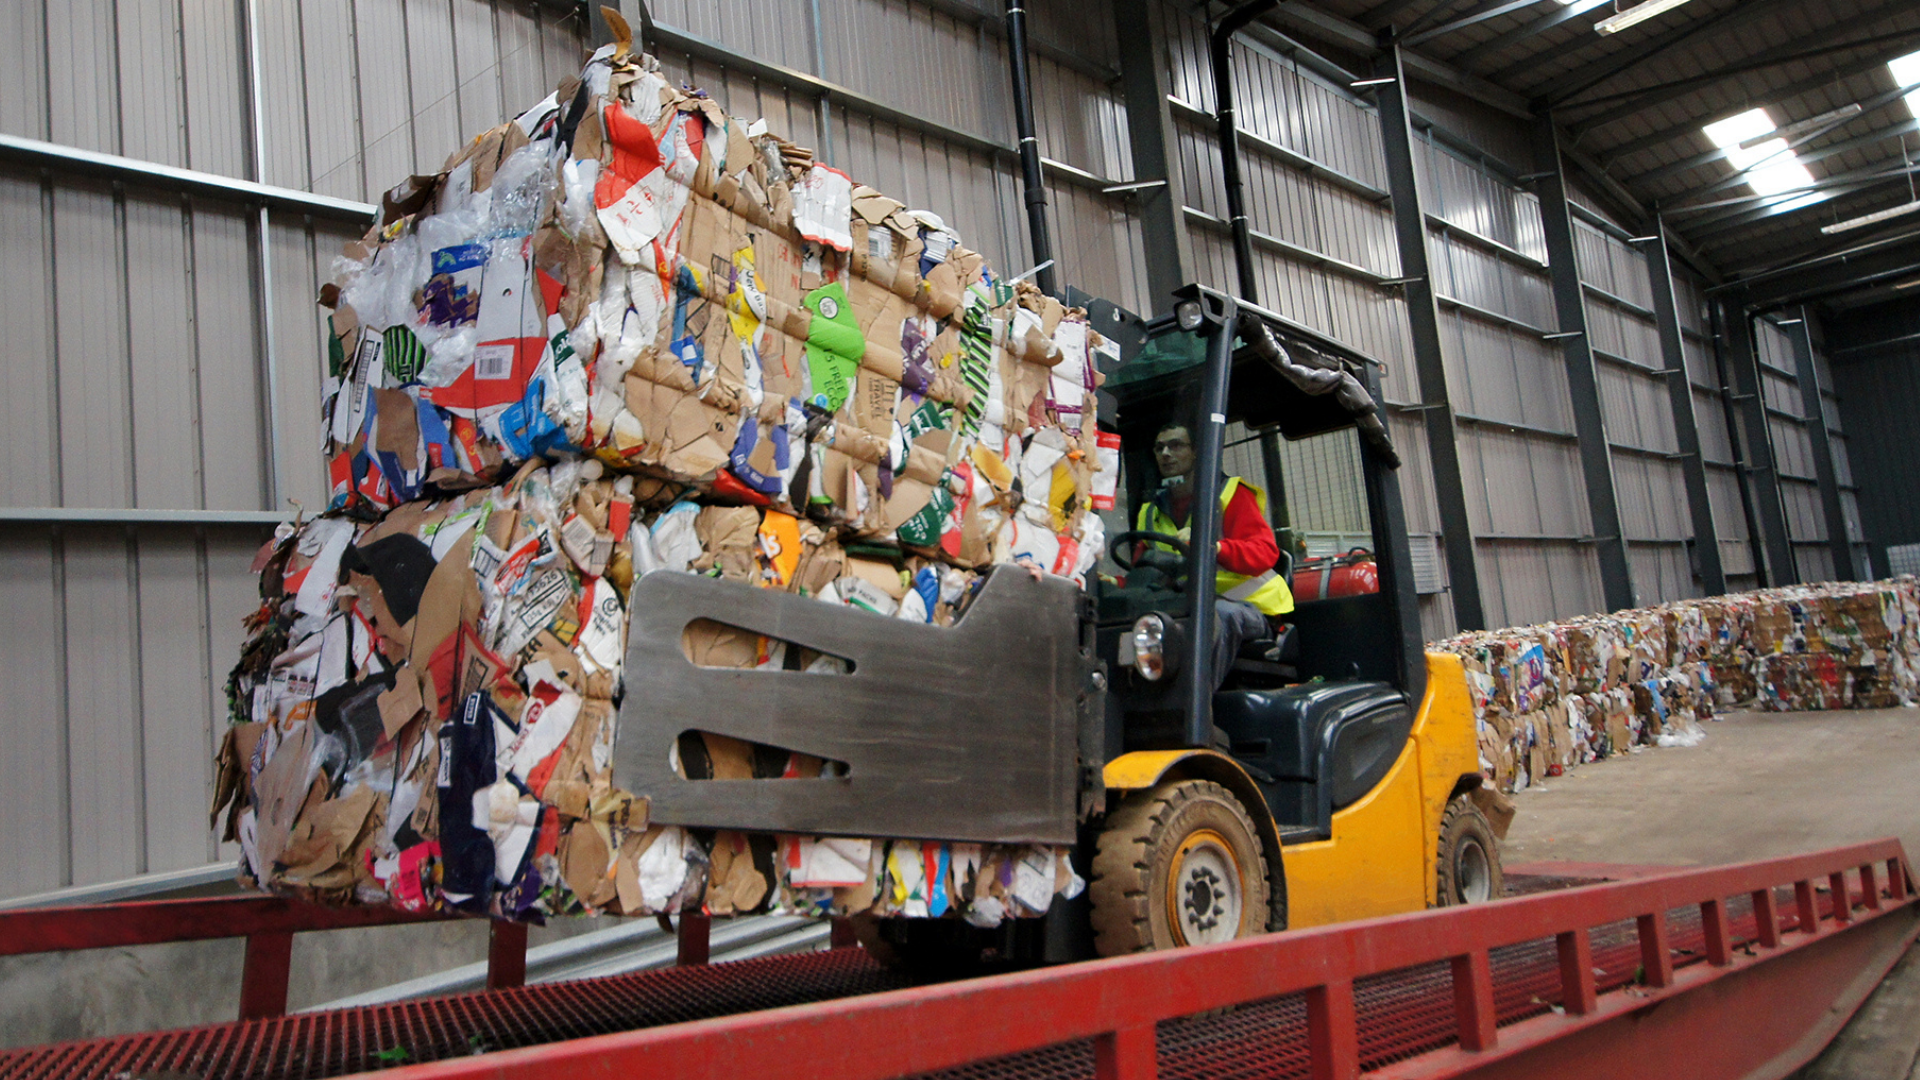 Forklift driver with waste to recycle